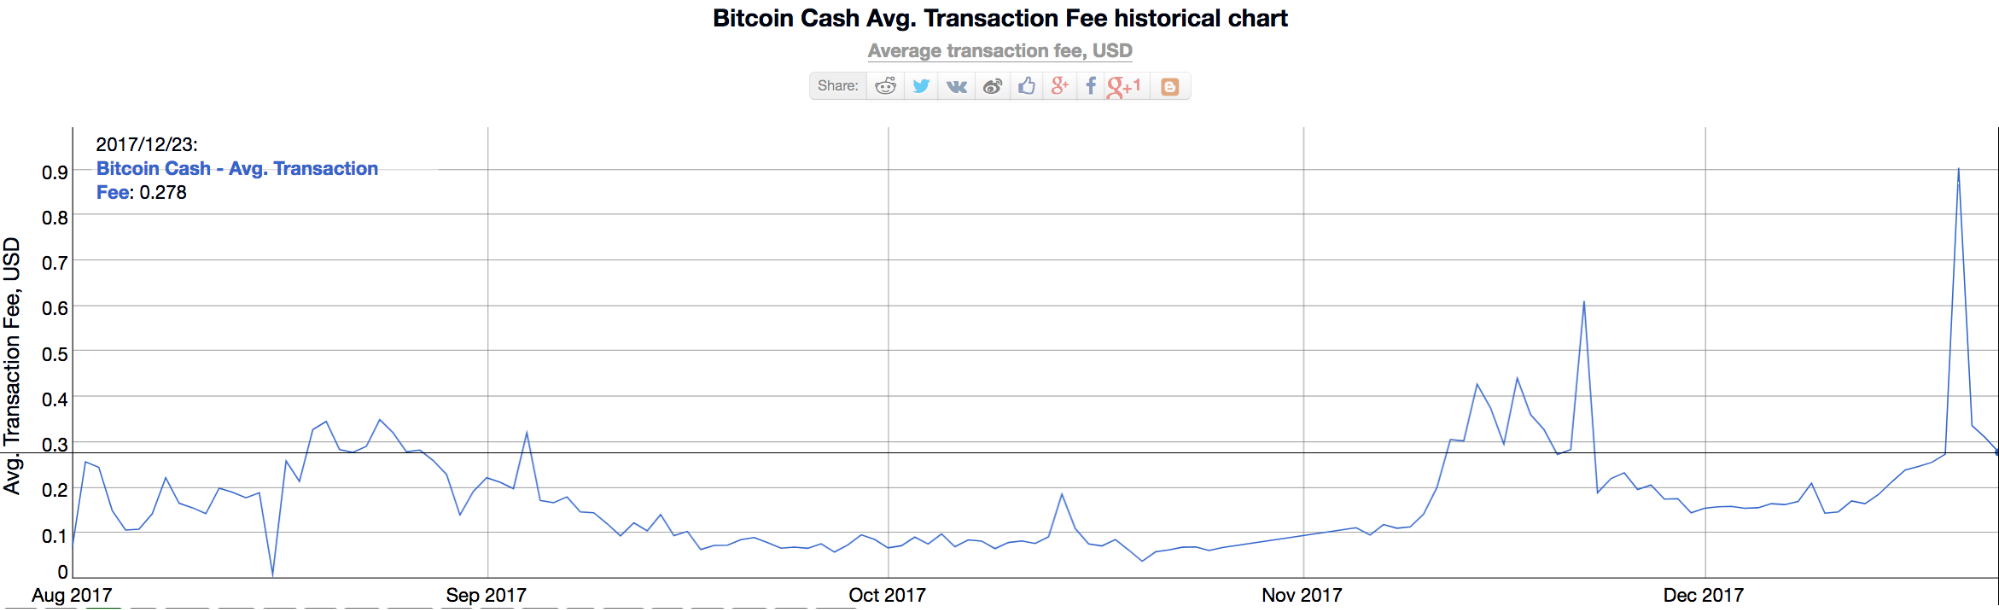 bitcoin cash transaction fee historical chart